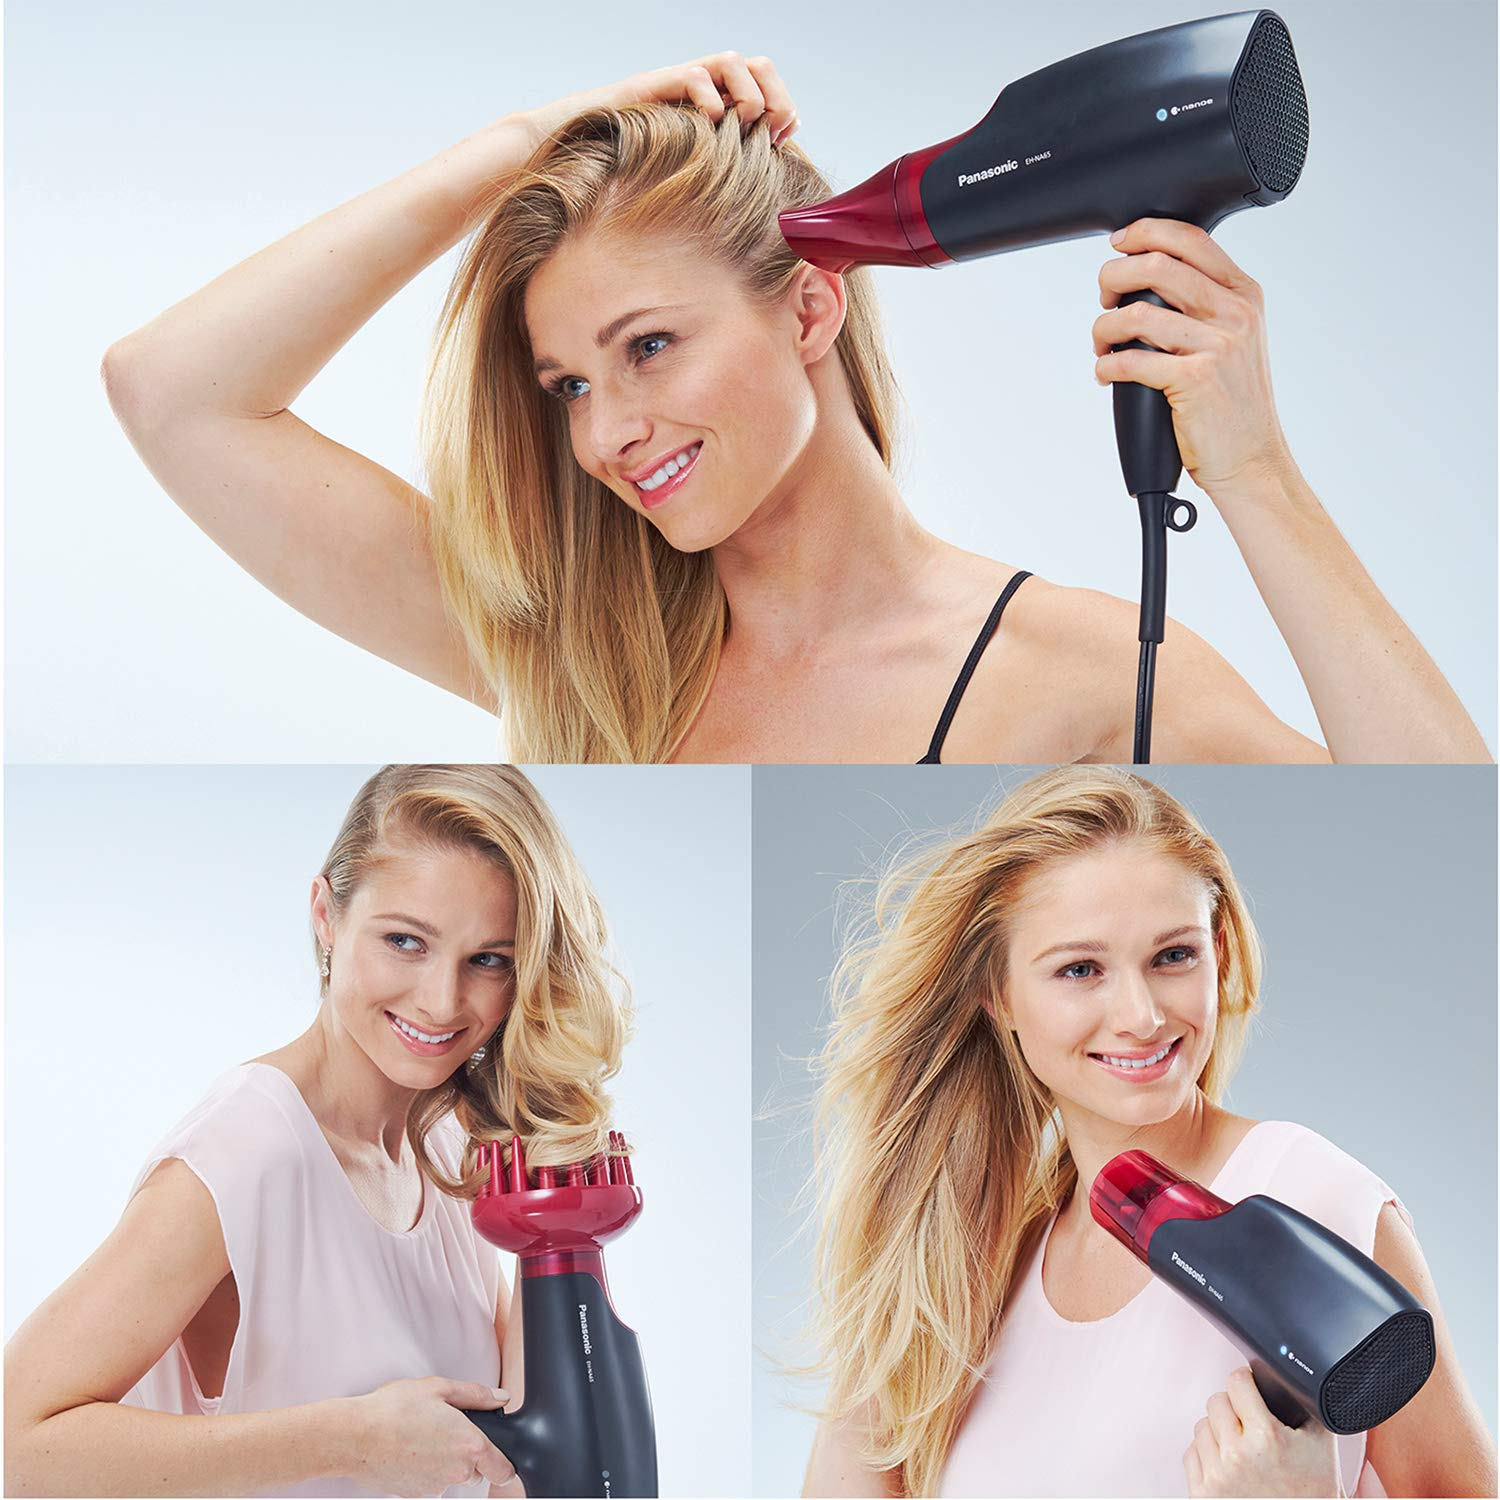 Panasonic EH-NA65-K nanoe Dryer, Professional-Quality with 3 attachments Including Quick Blow Dry Nozzle for Smooth, Shiny Hair, Pink by Panasonic (Image #9)